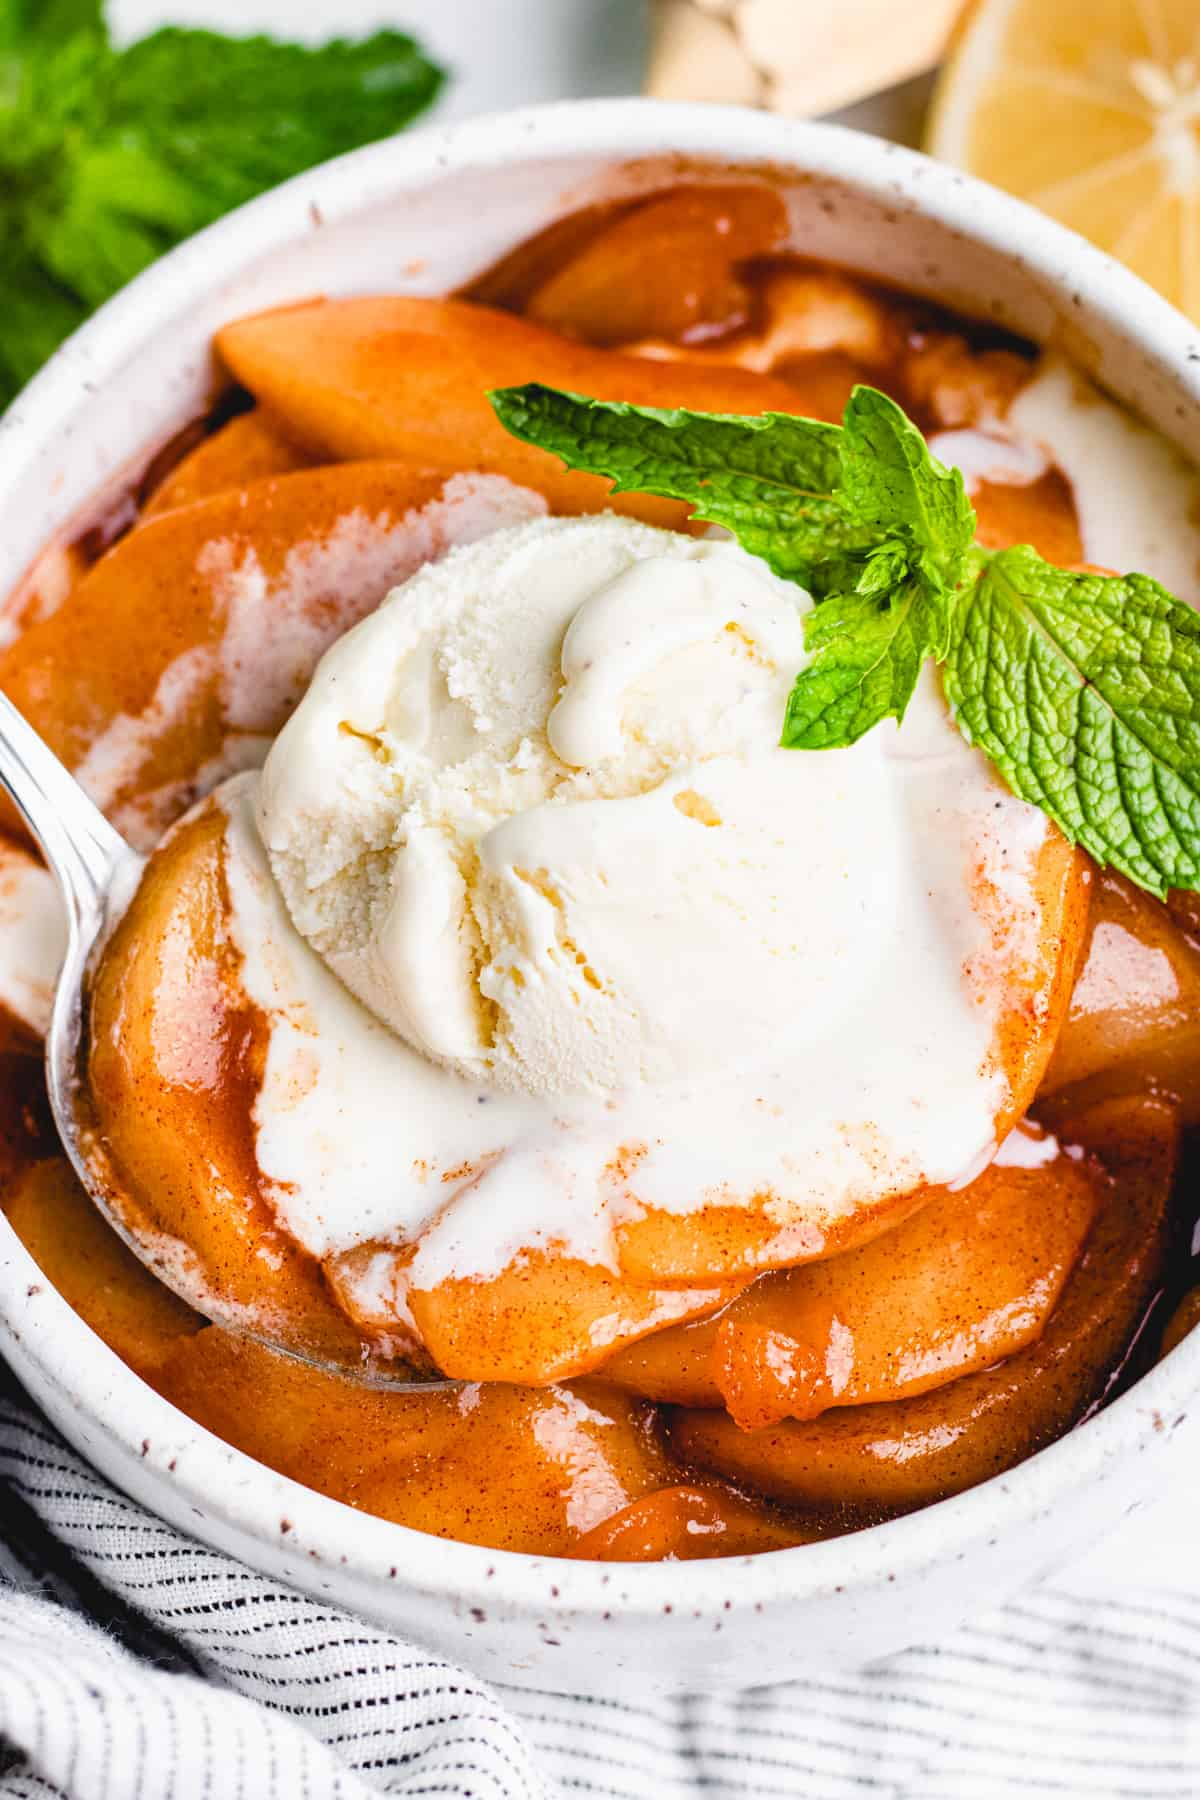 Cinnamon Baked Apple slices in a white bowl, topped with a scoop of ice cream.